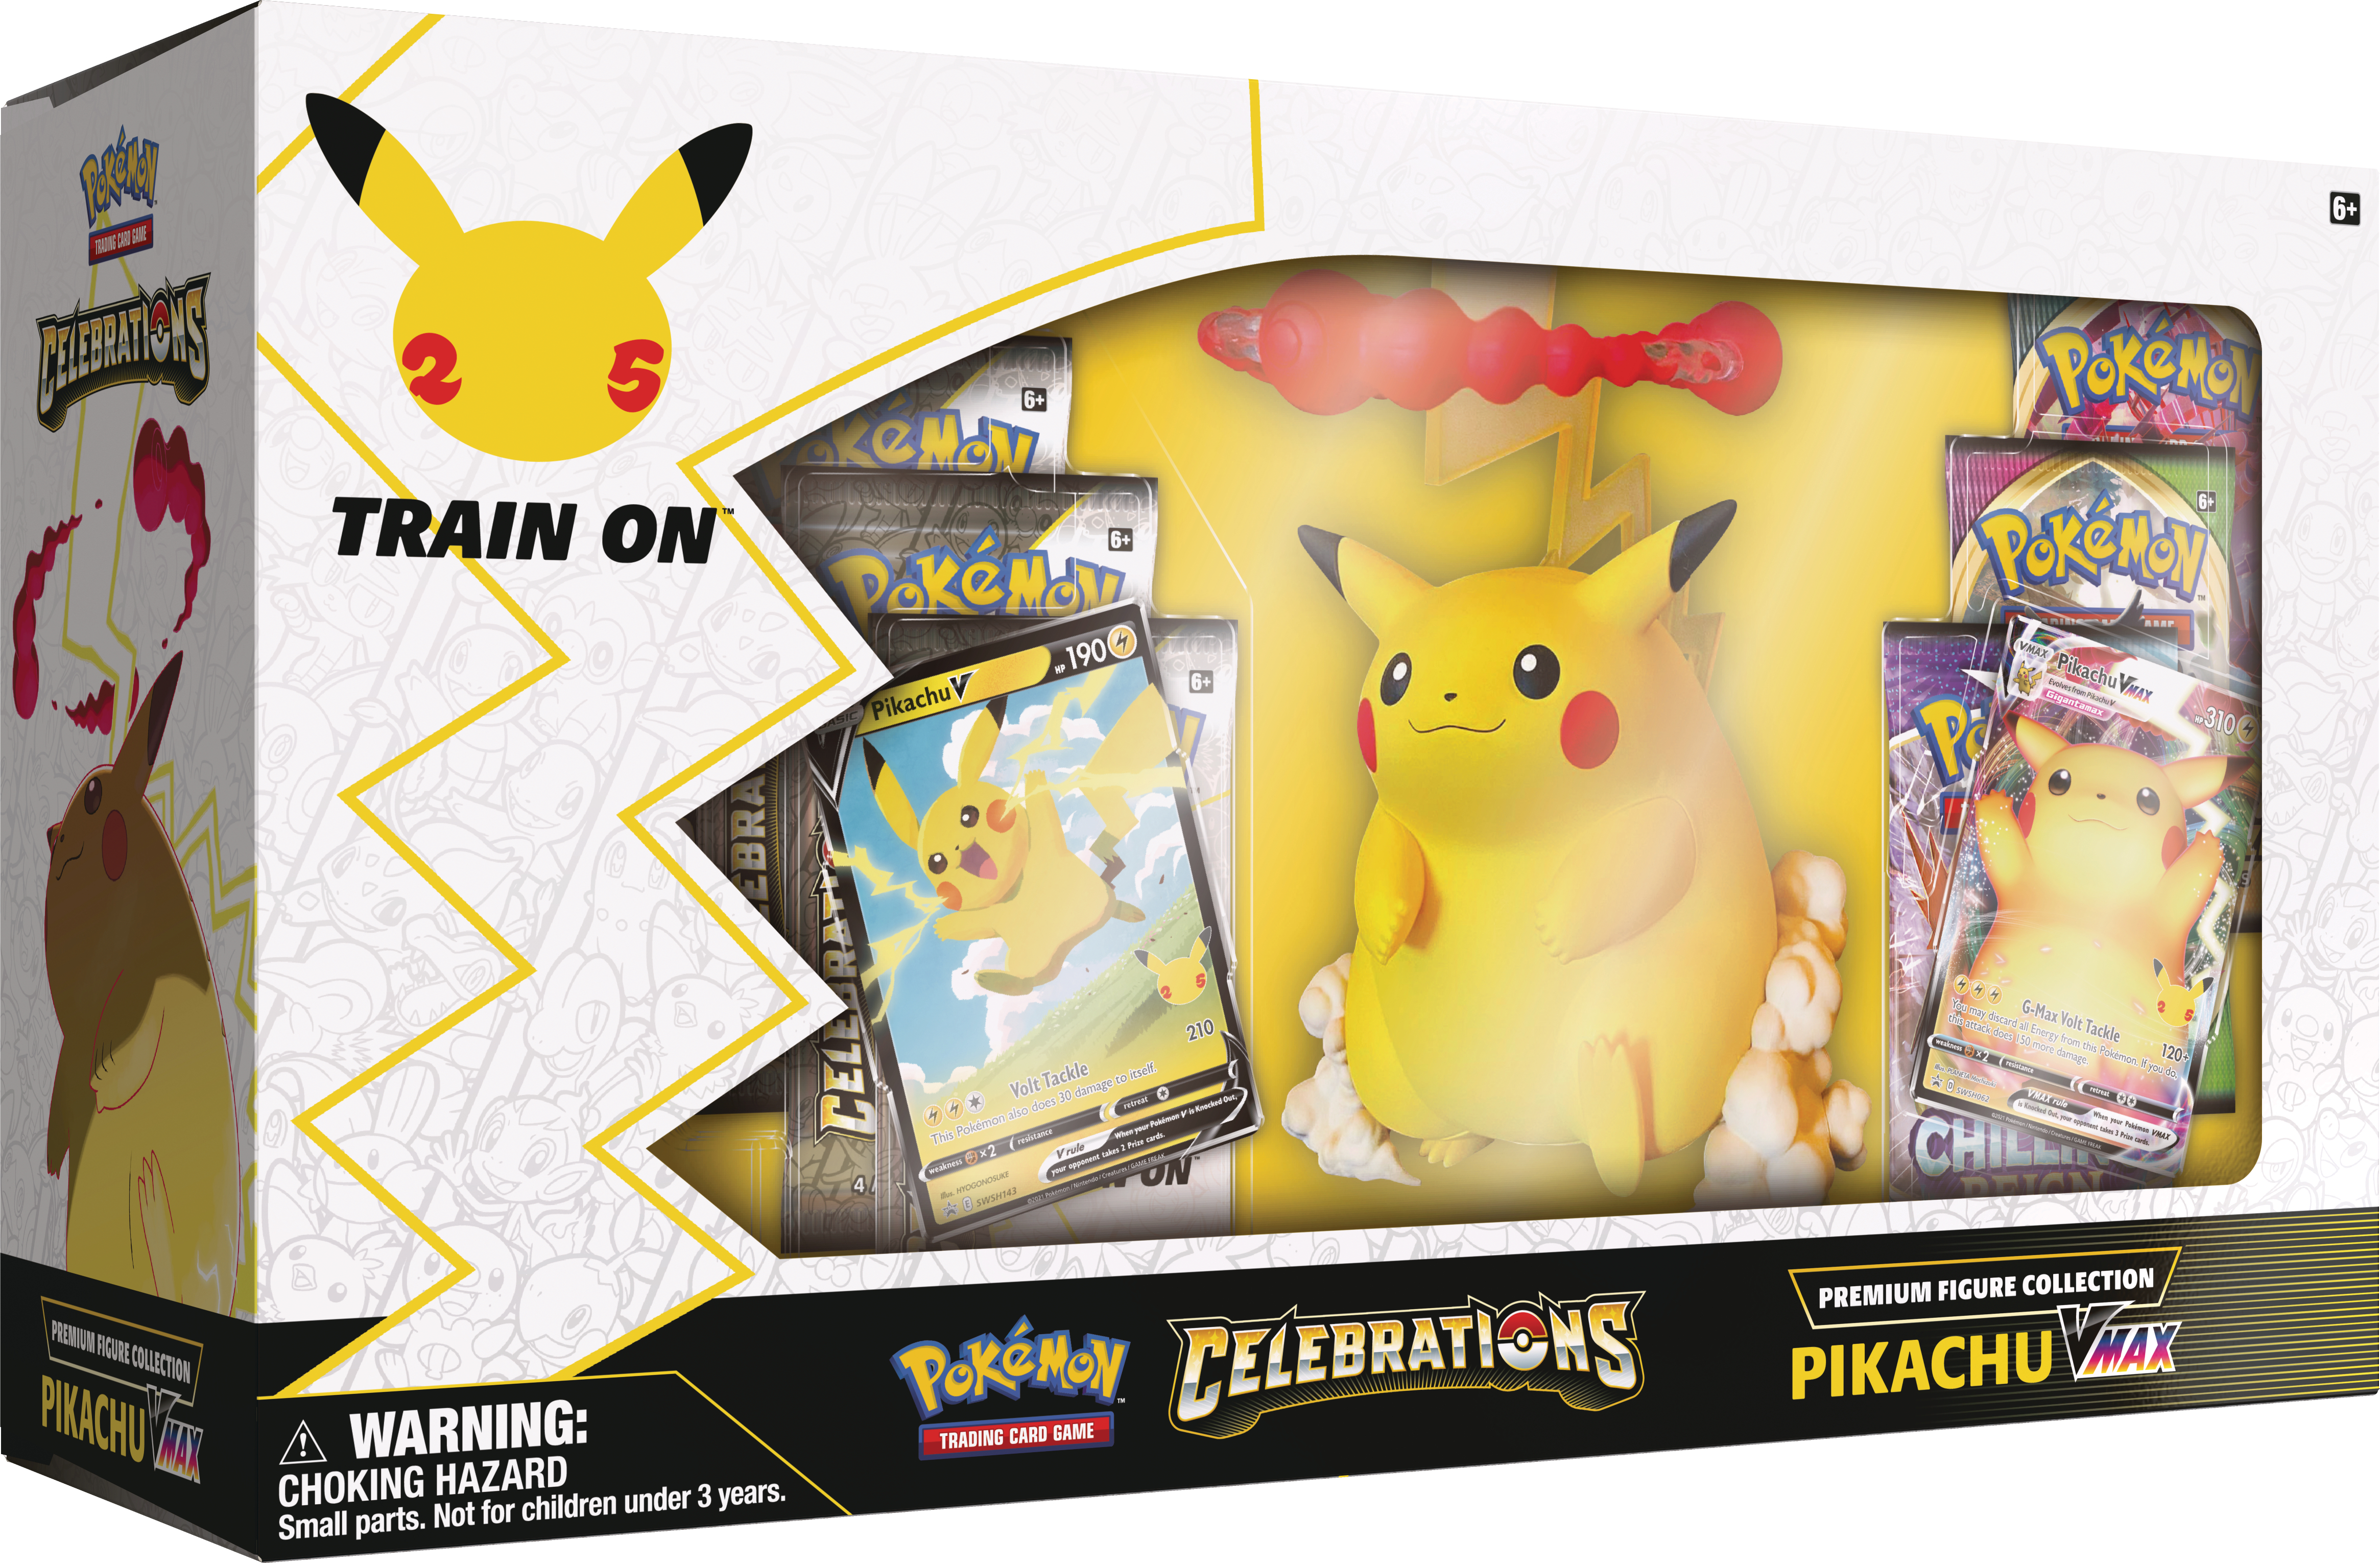 Celebrations Premium Pikachu VMAX Figure Collection (Ships by October 22nd)